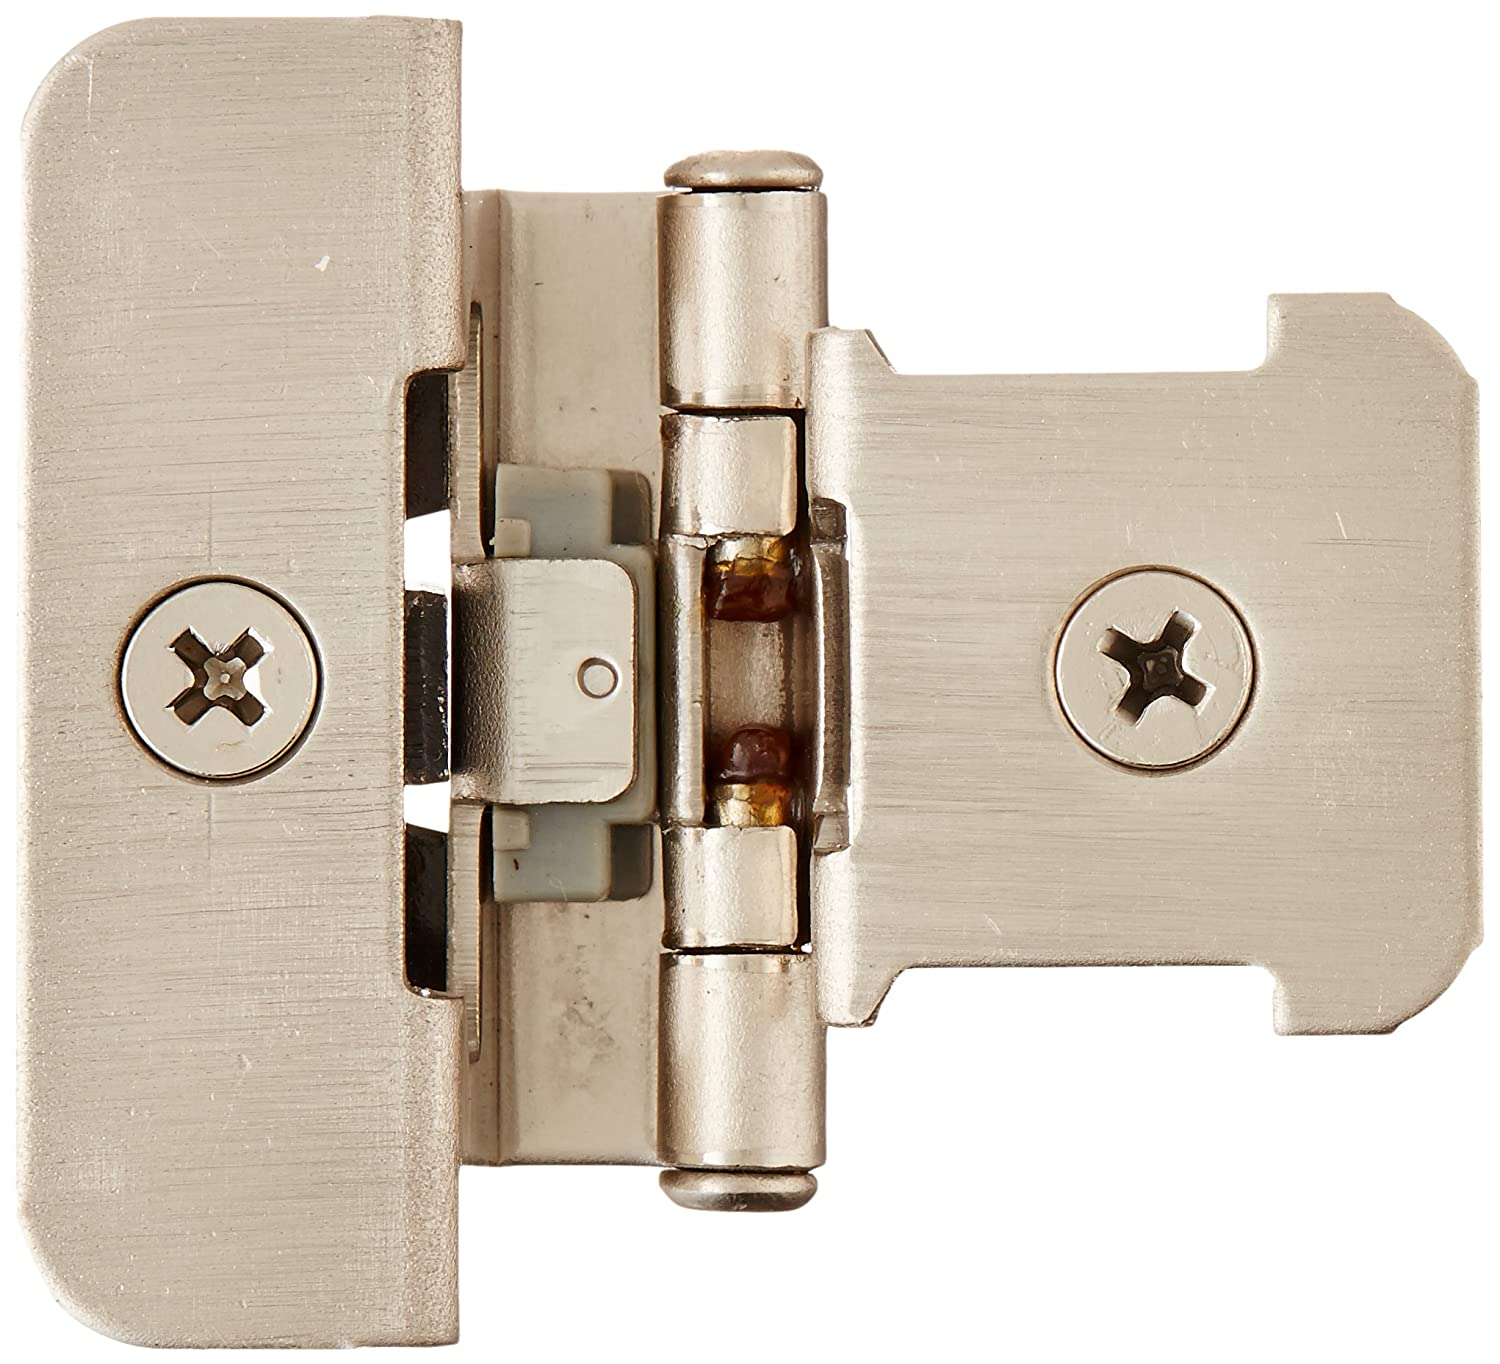 Double Demountable Cabinet Hinges Amerock Bpr8701g10 Double Demountable Hinge With 1 4in6mm